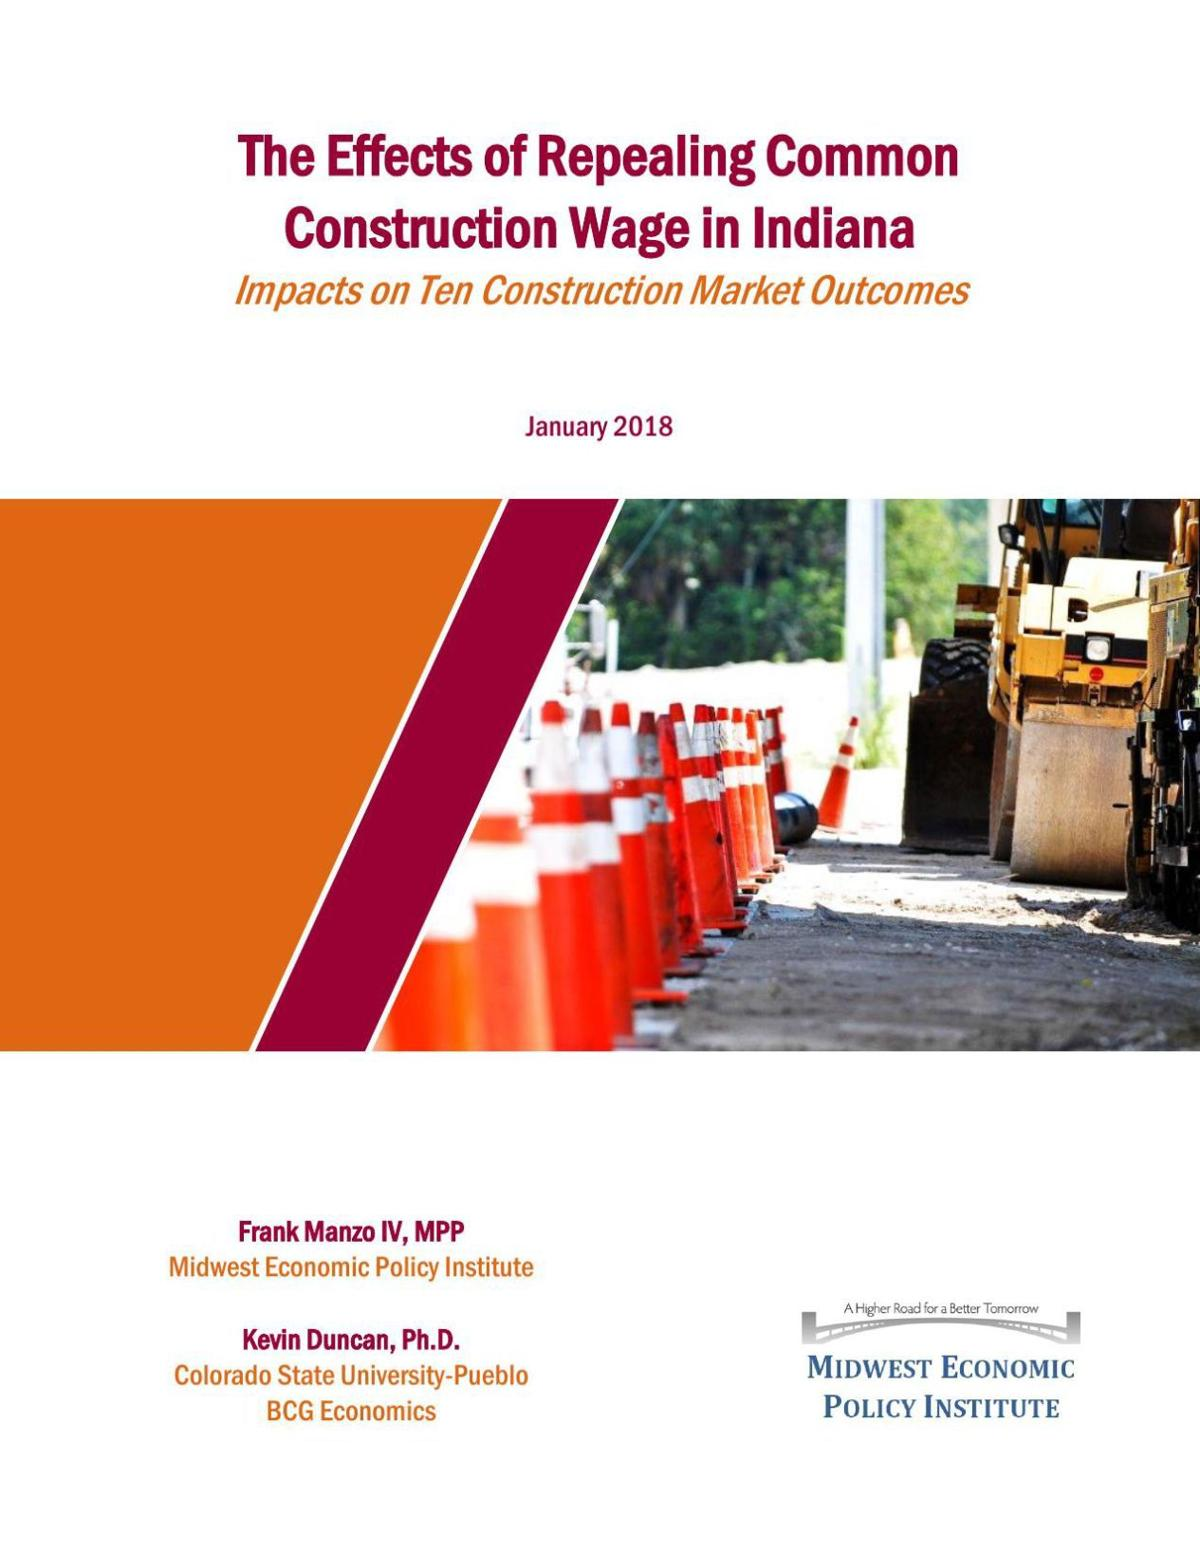 The Effects of Repealing Common Construction Wage in Indiana